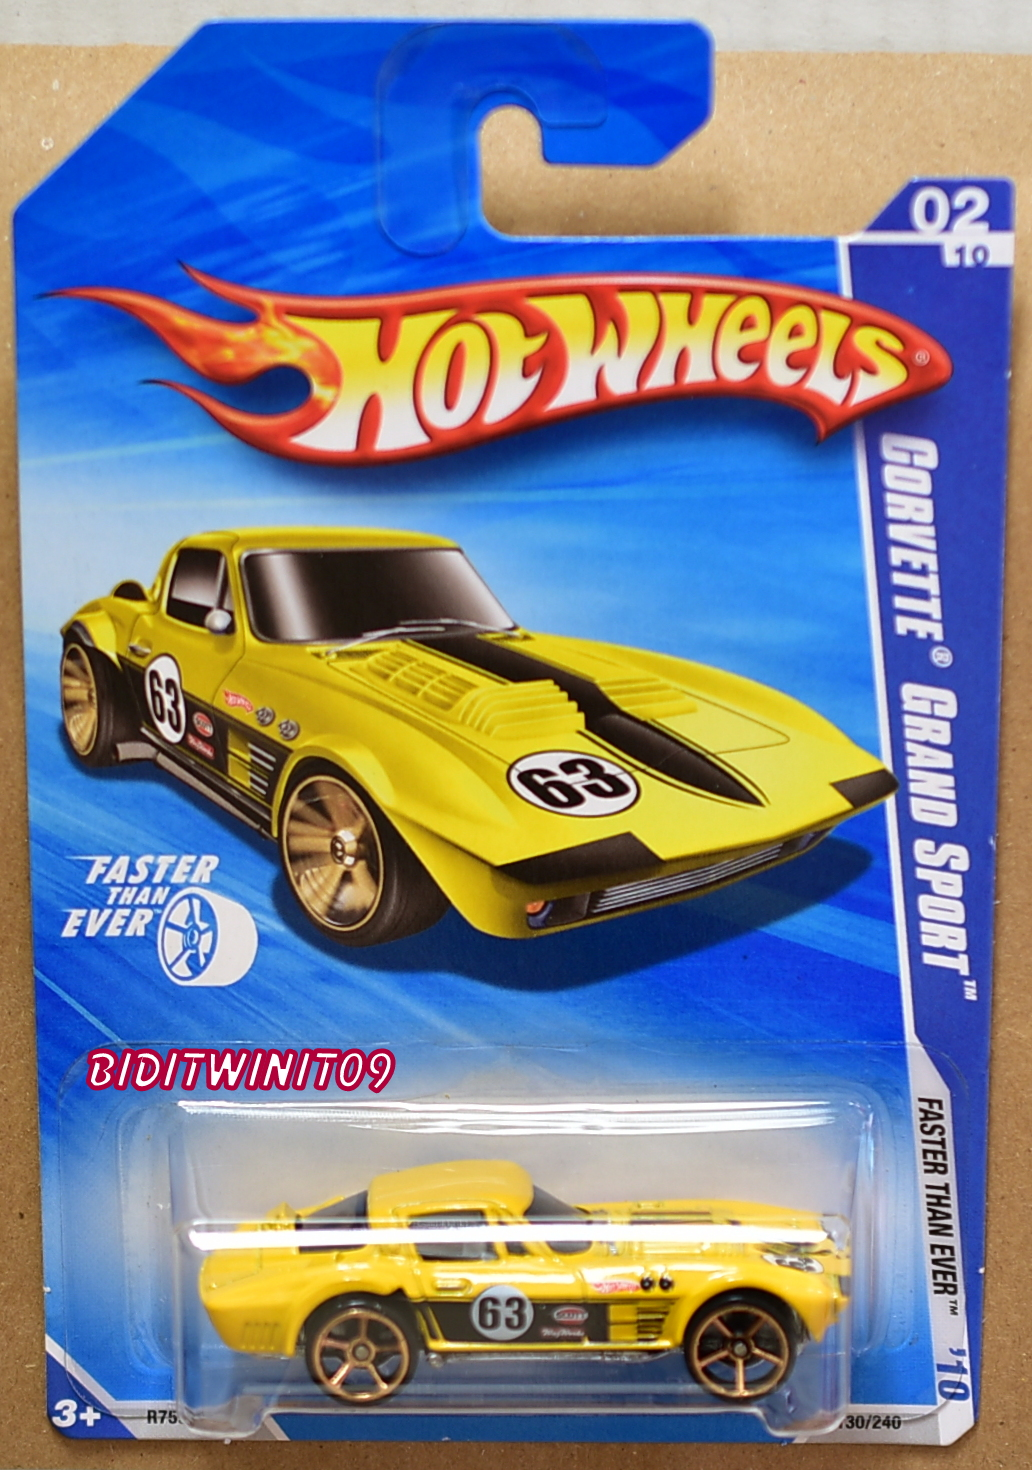 HOT WHEELS 2010 FASTER THAN EVER CORVETTE GRAND SPORT YELLOW MISLOCATED SEATS E+